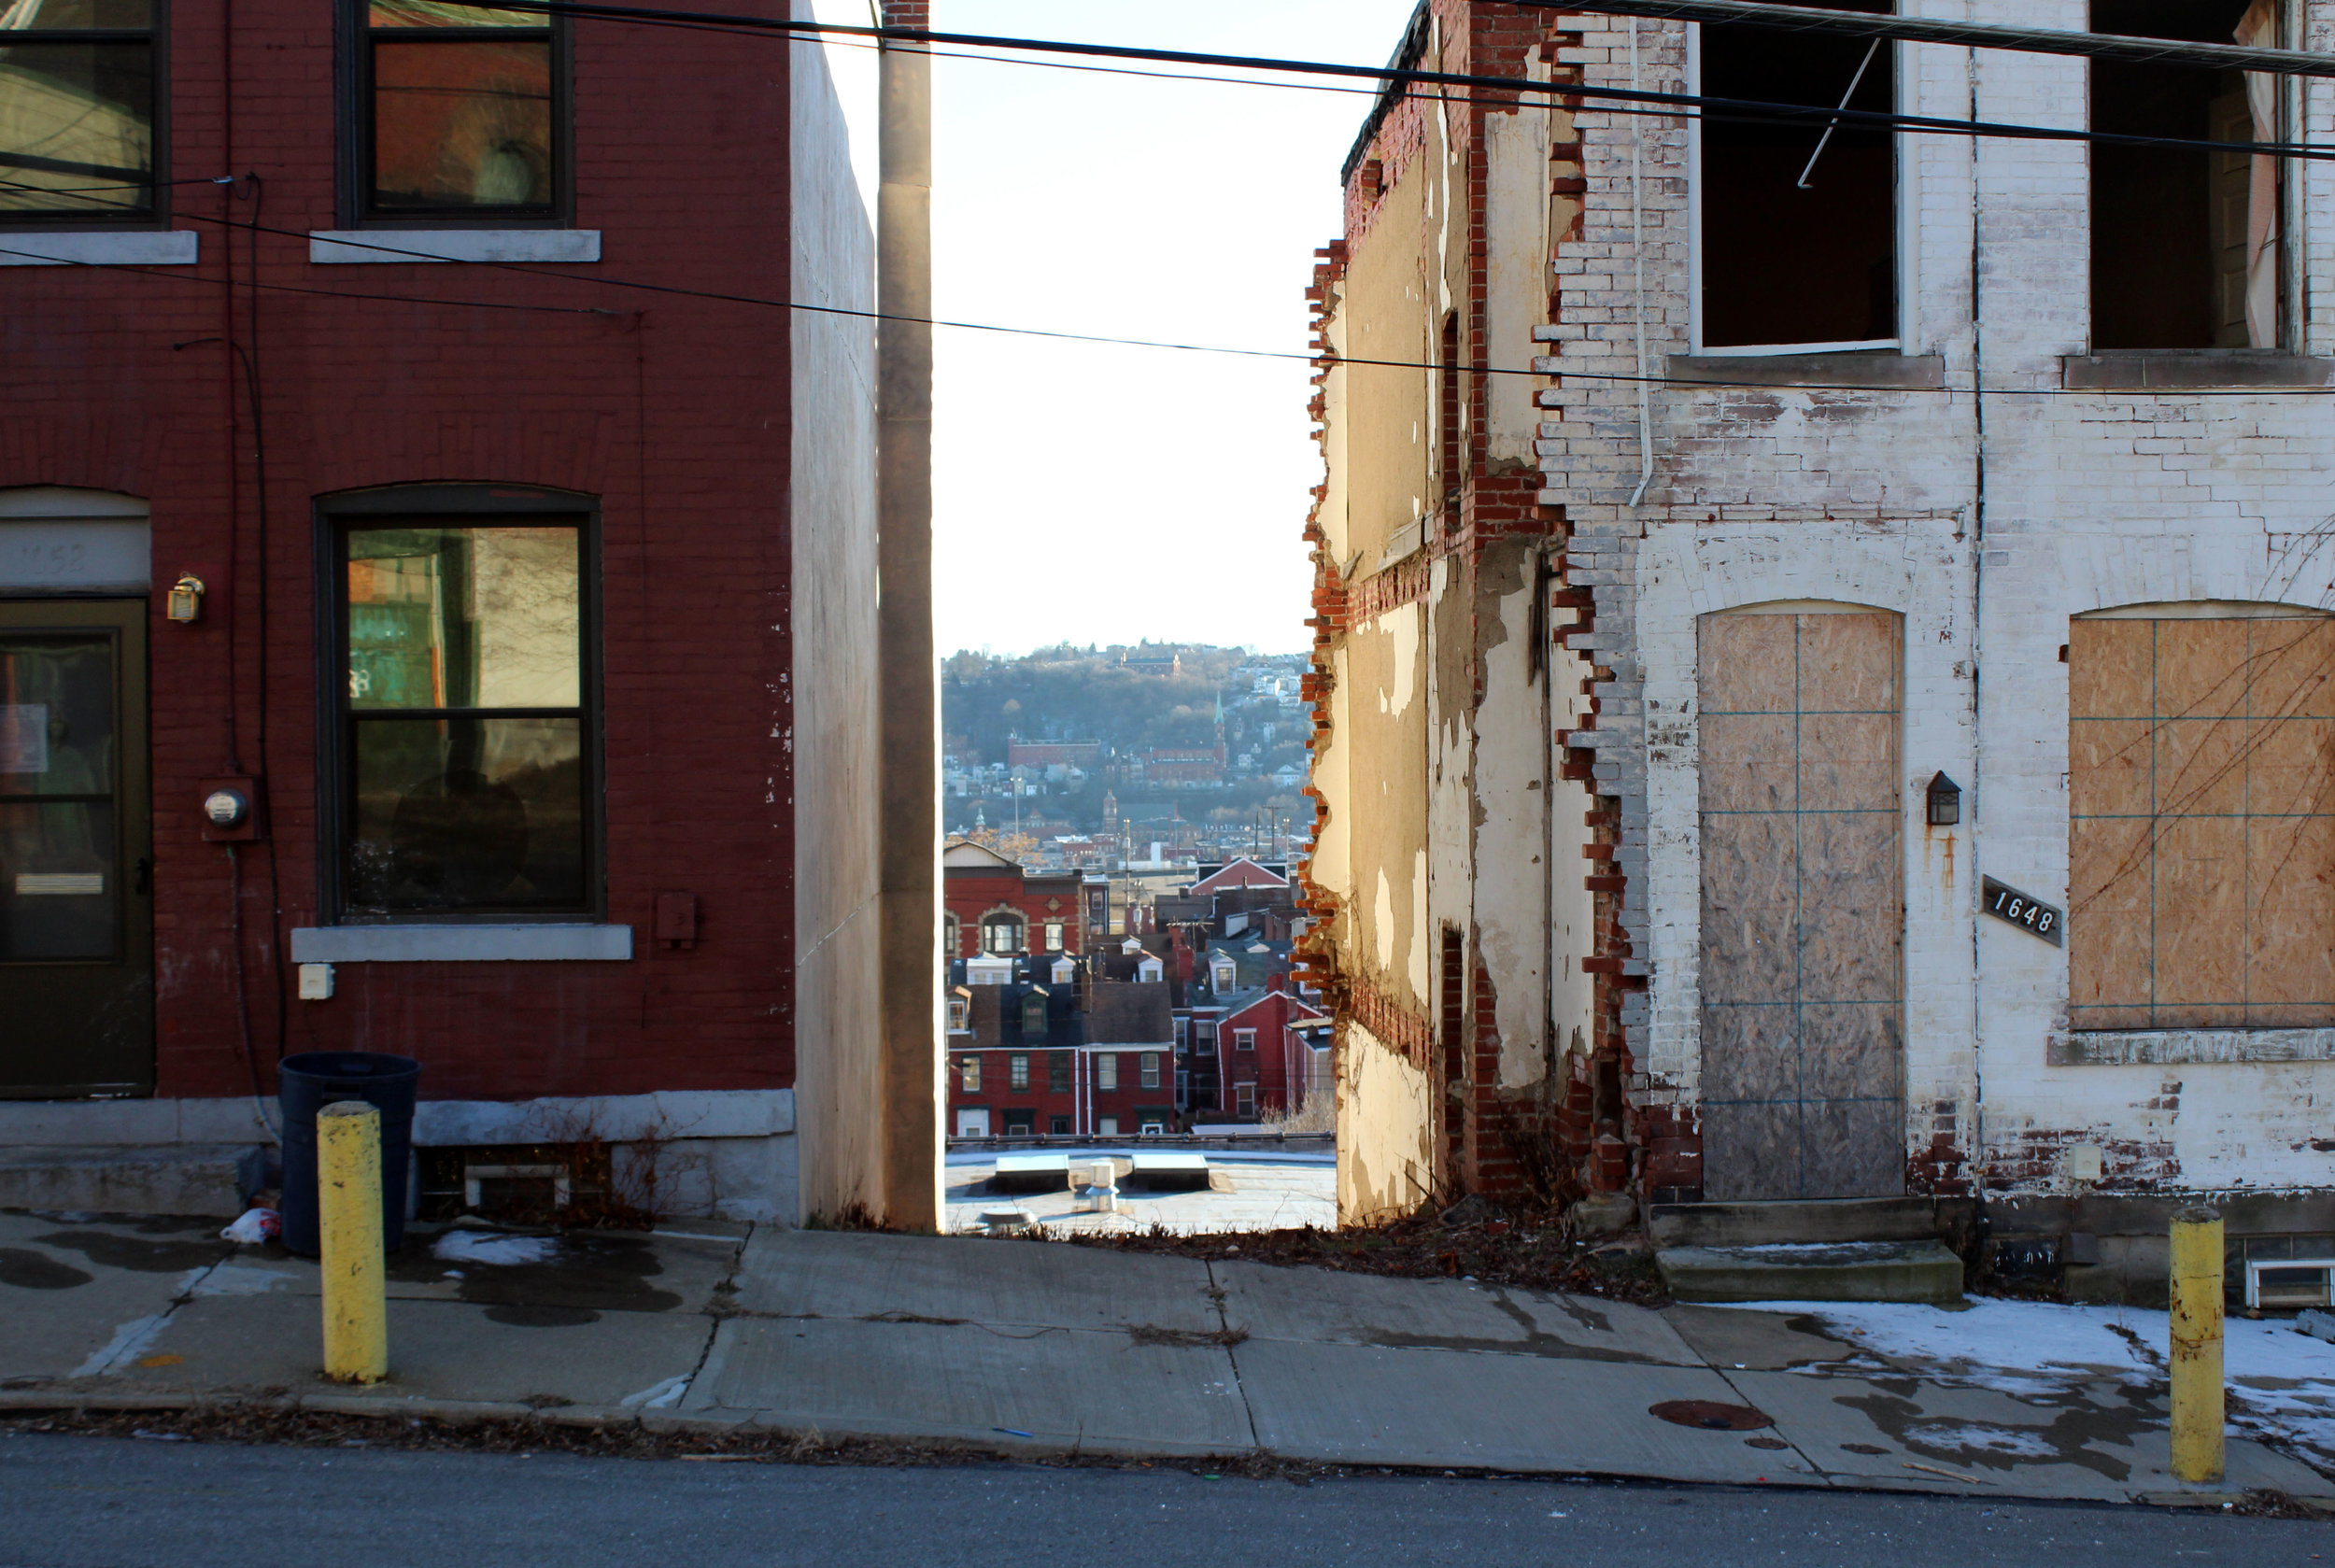 During my visit to the Hill District I discovered there were often buildings missing.This defining characteristic inspired my overall theme of gaps.